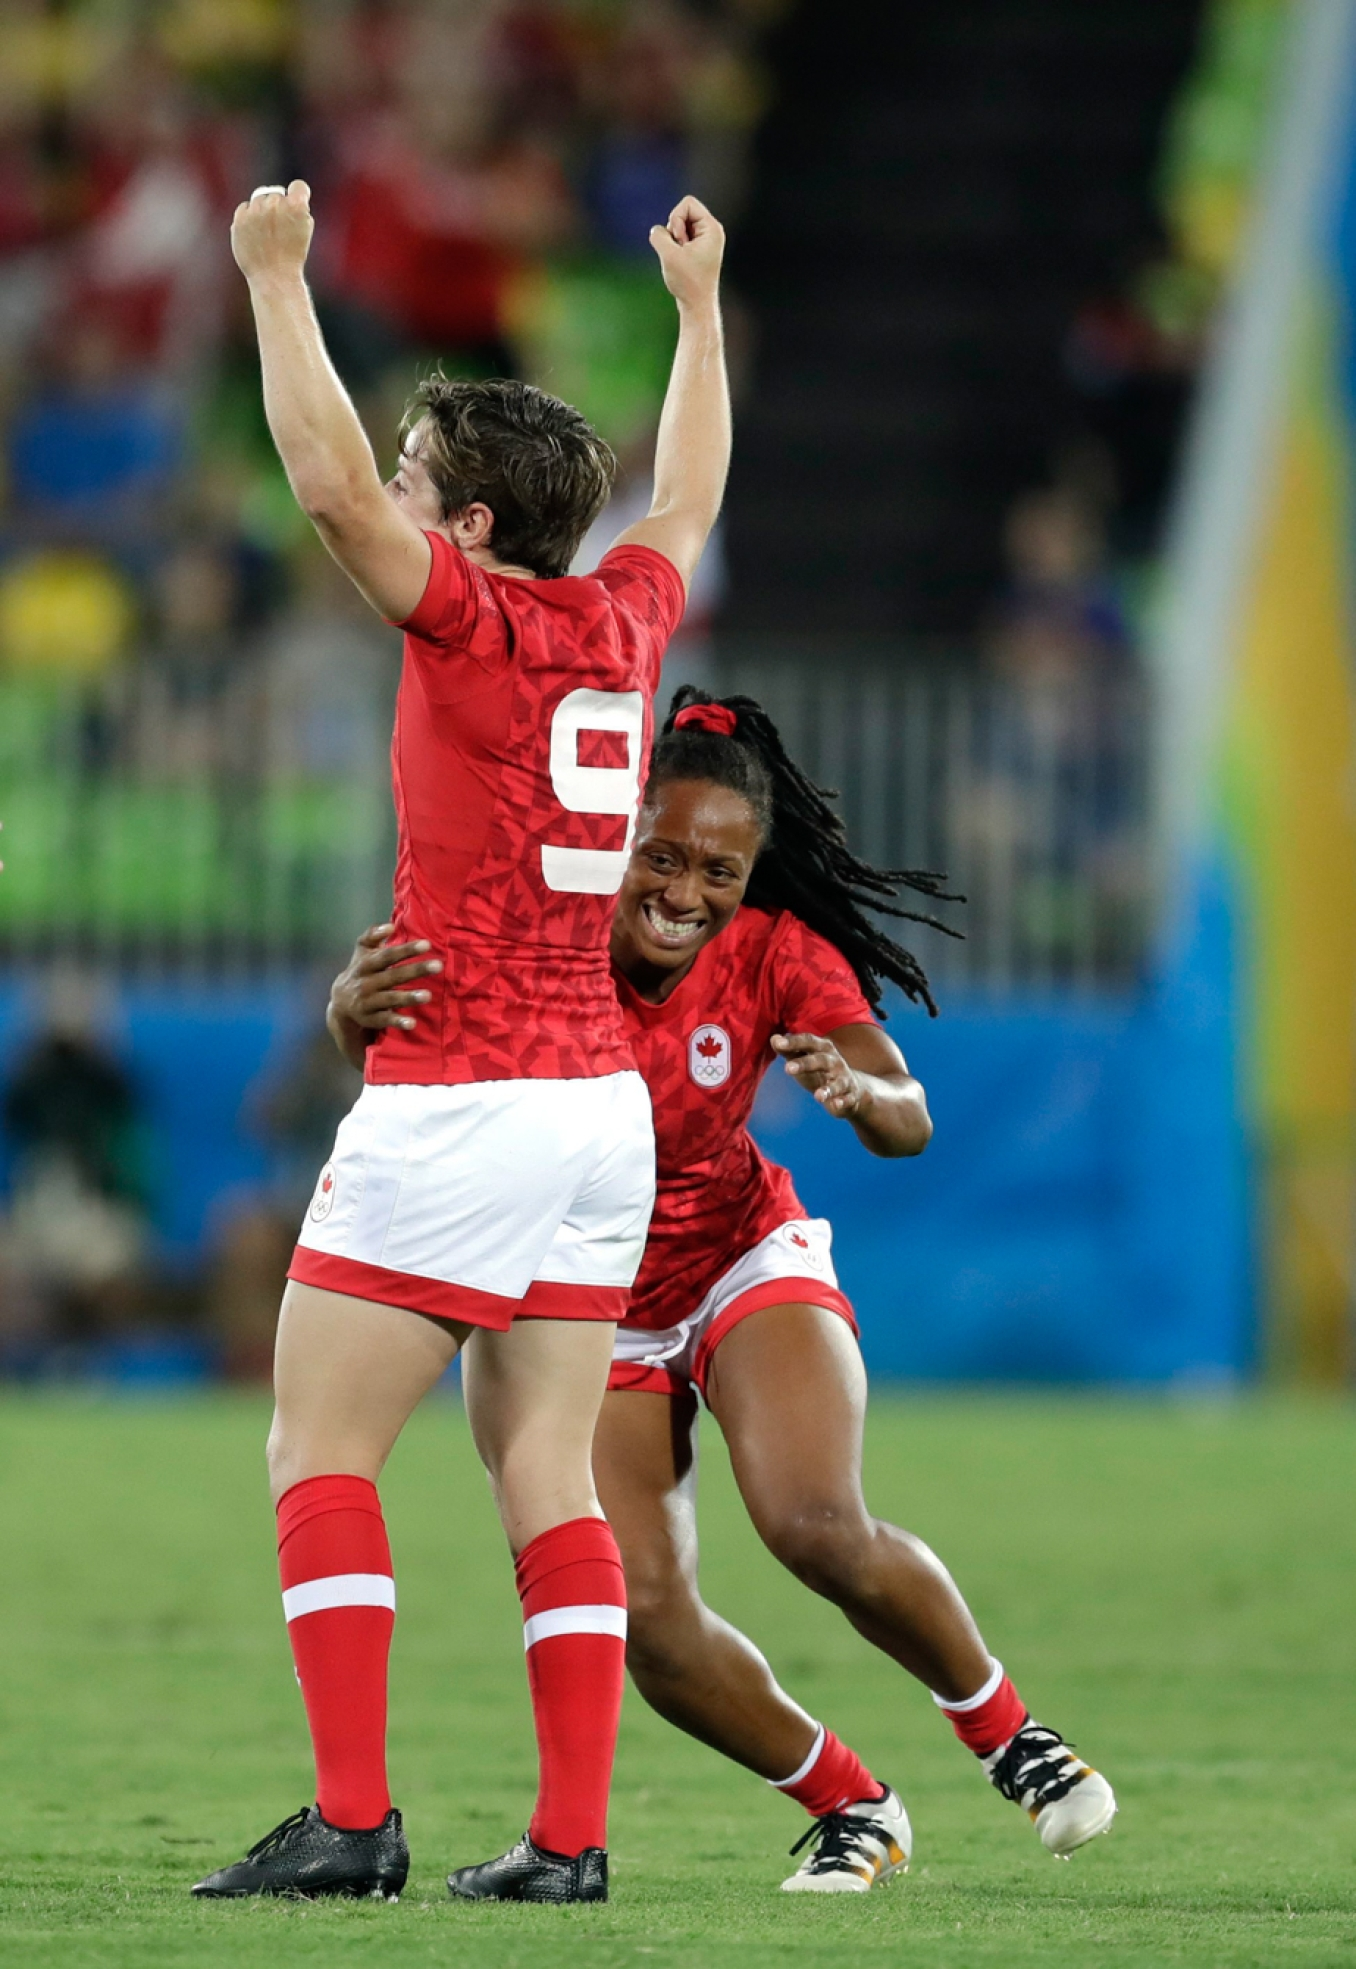 Canada's Charity Williams, right, celebrates with teammate Ghislaine Landry, after winning the the women's rugby sevens bronze medal match against Great Britain at the Summer Olympics in Rio de Janeiro, Brazil, Monday, Aug. 8, 2016. (AP Photo/Themba Hadebe)